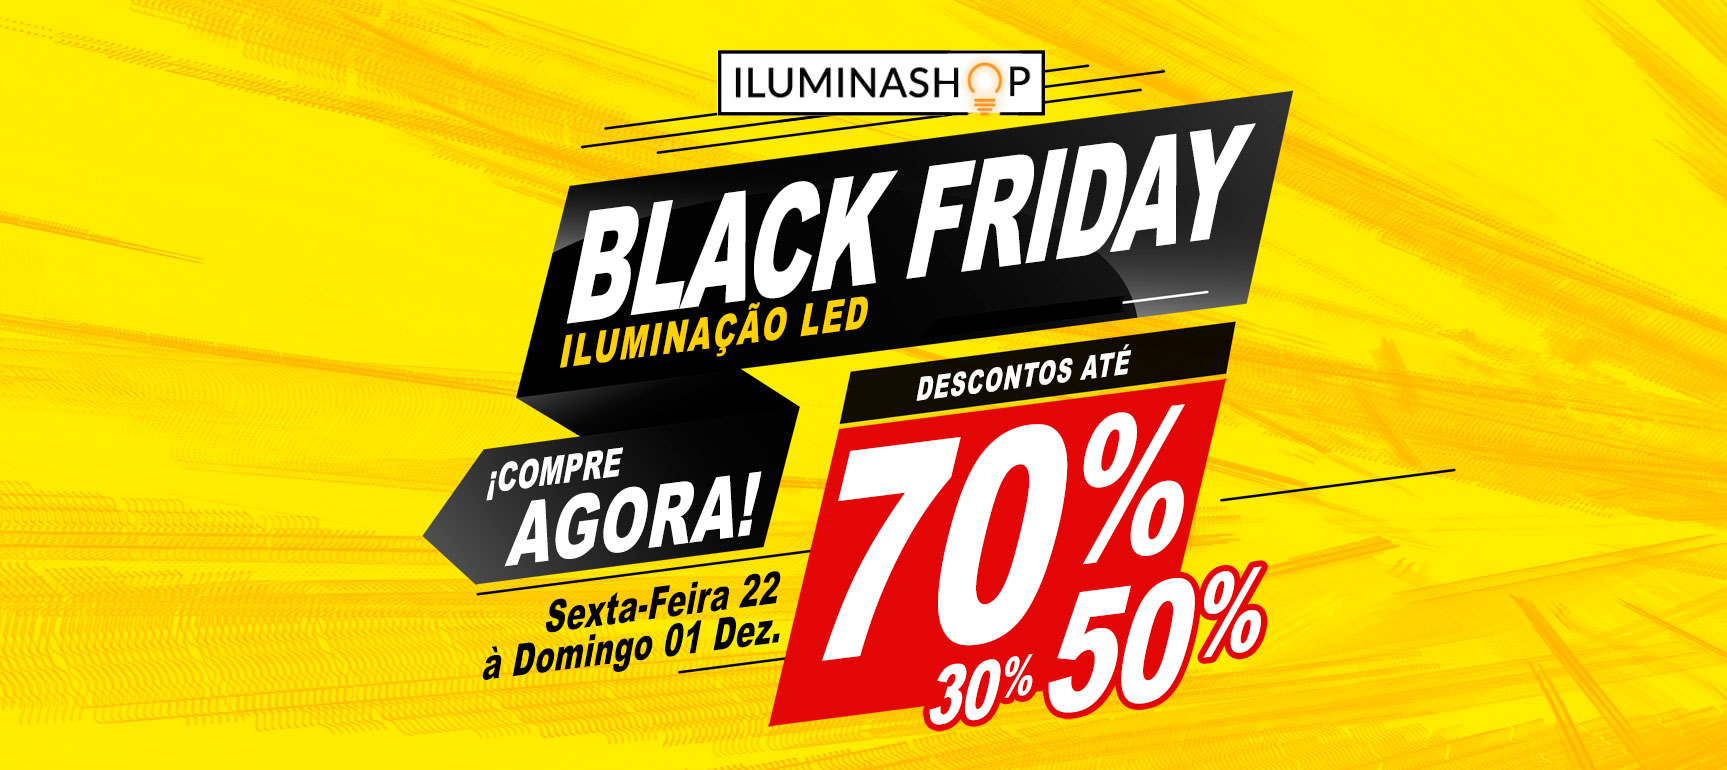 Black Friday iluminación Iluminashop